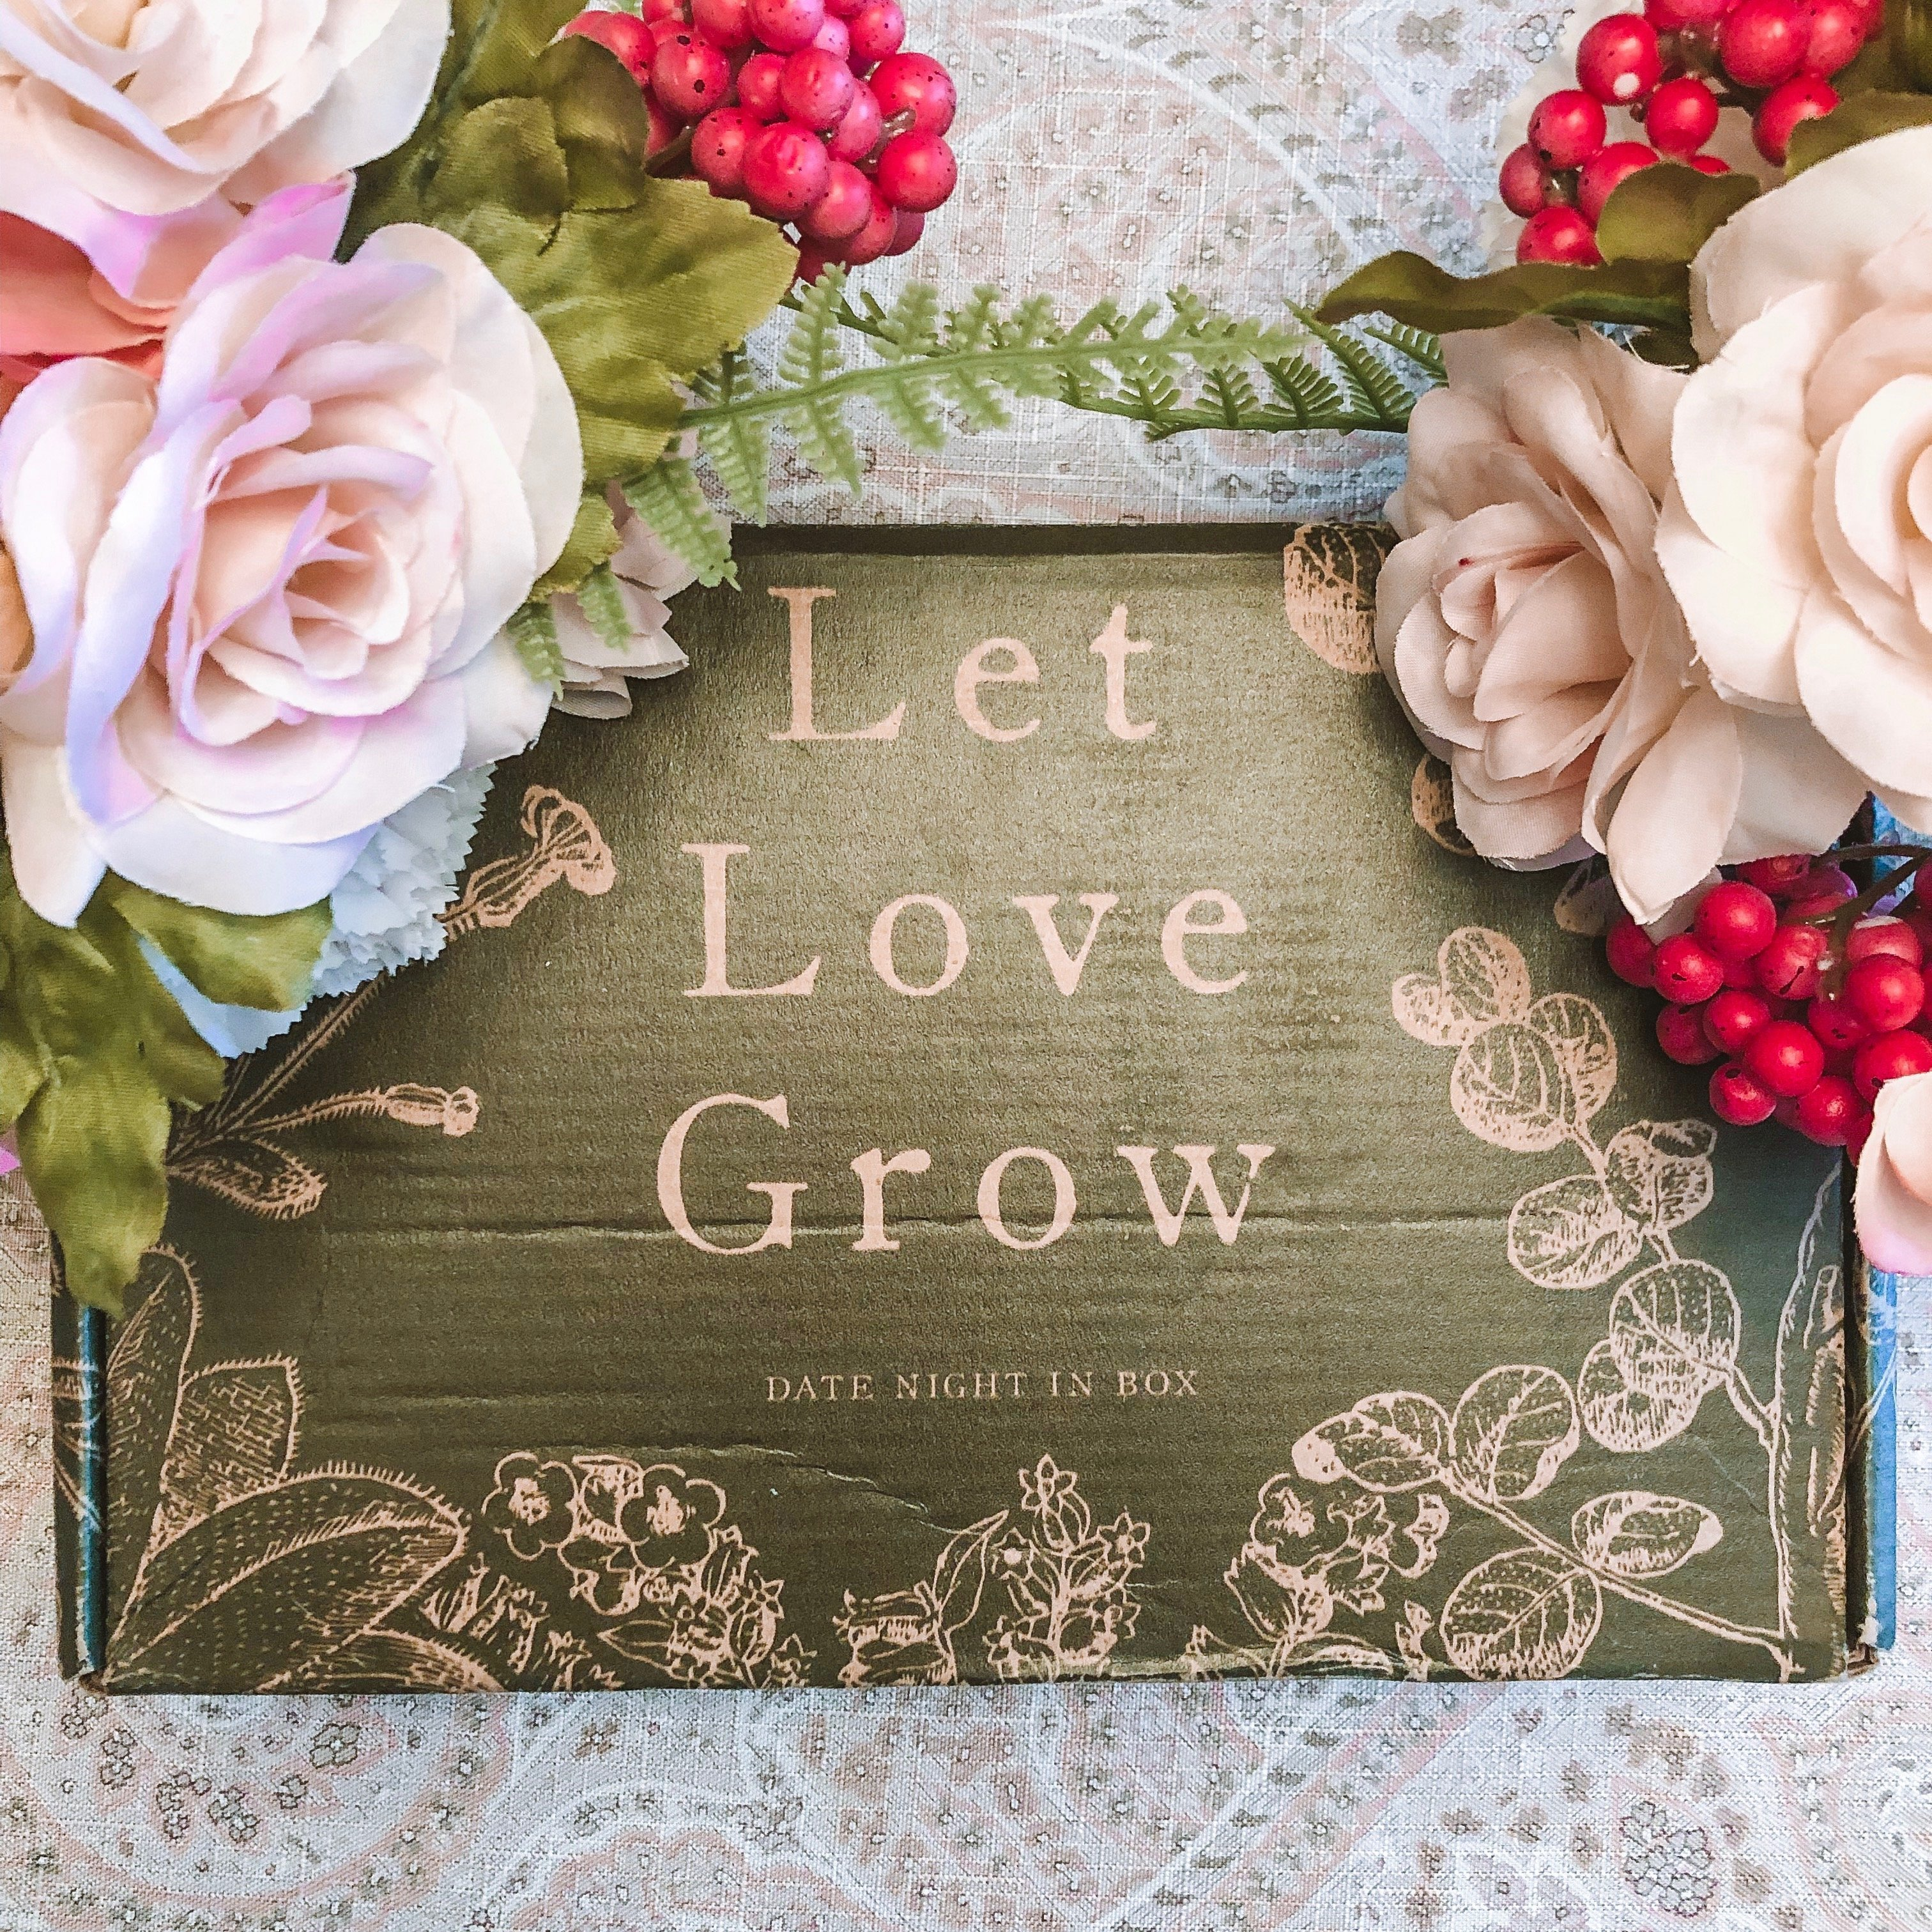 Letting Love Grow with this month's eco-friendly Date Night In Box!